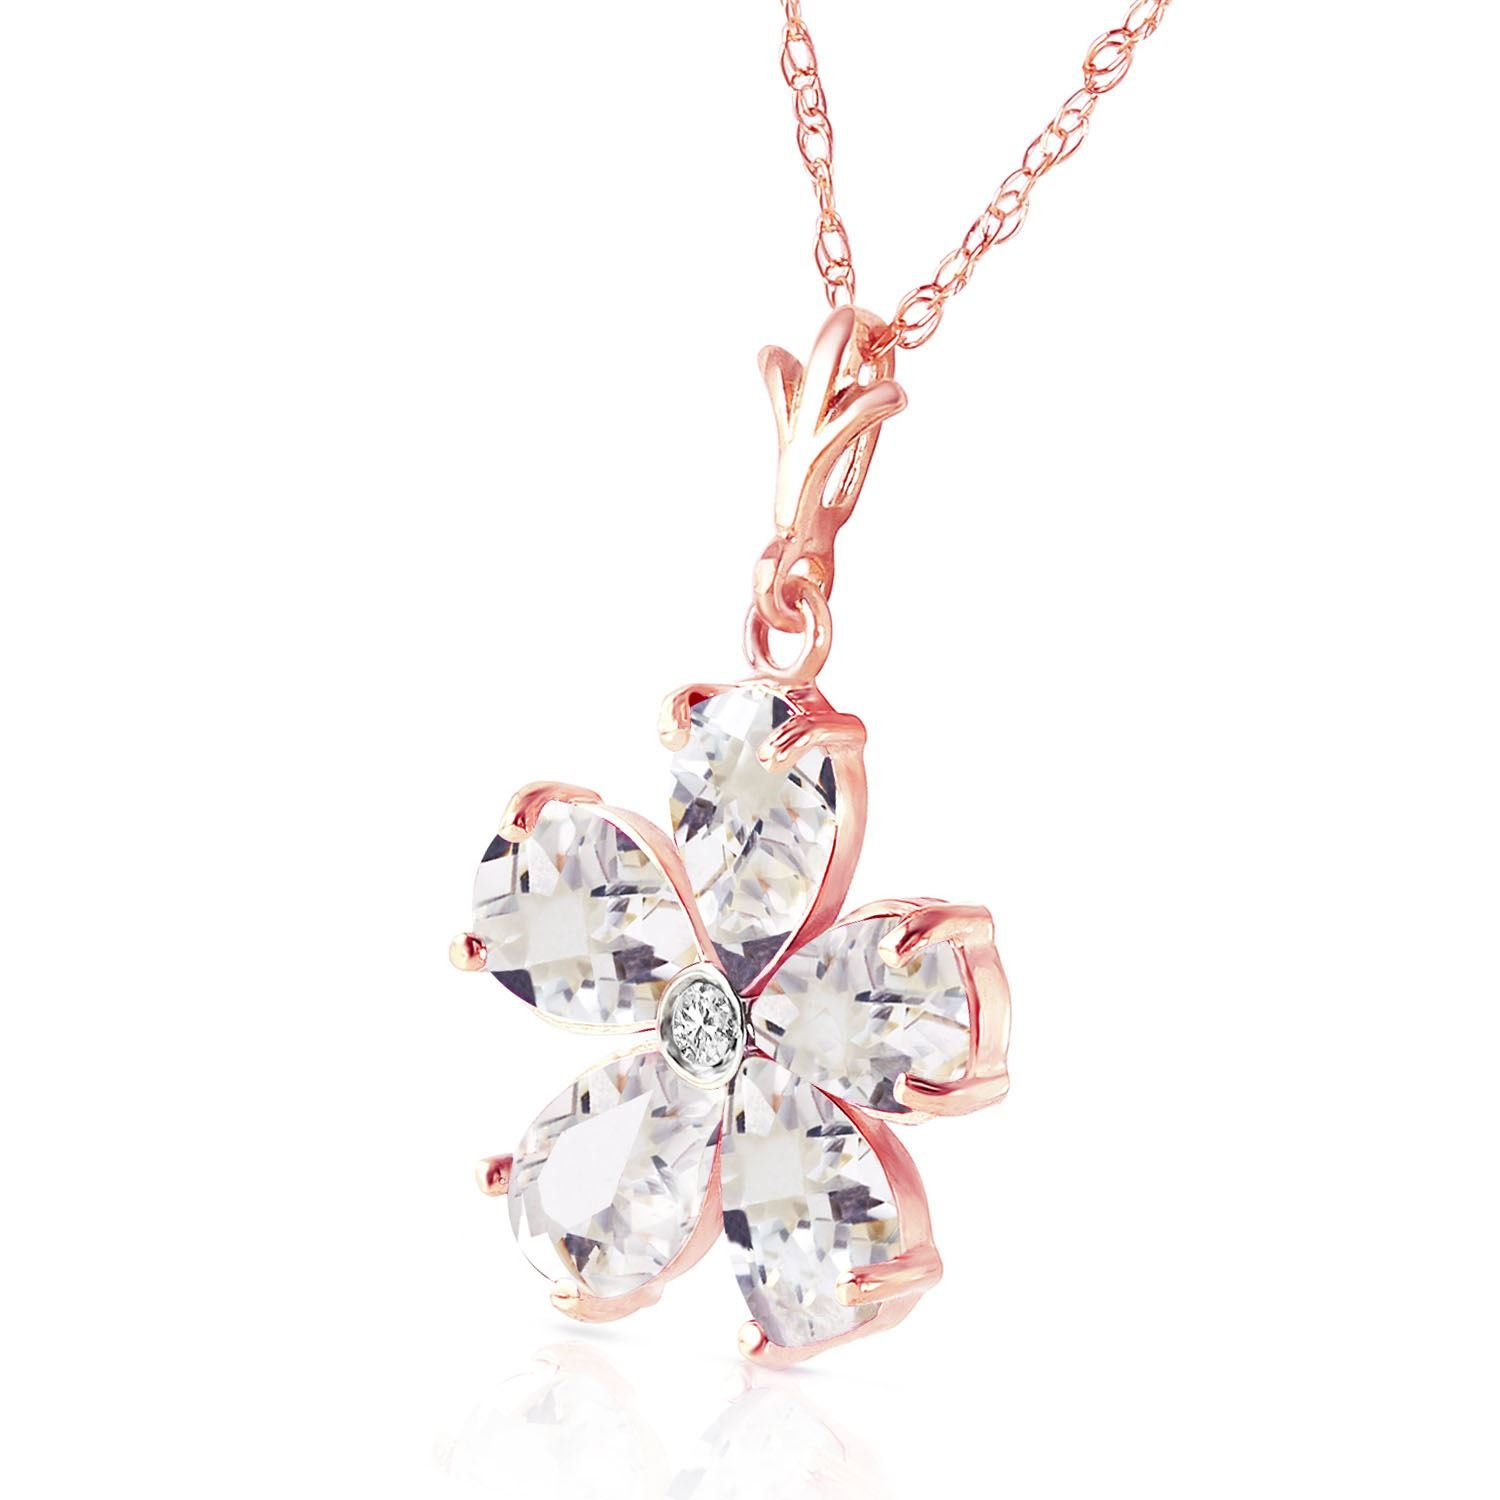 ALARRI 14K Solid Rose Gold Necklace w// Natural Rose Topaz /& Diamond with 22 Inch Chain Length